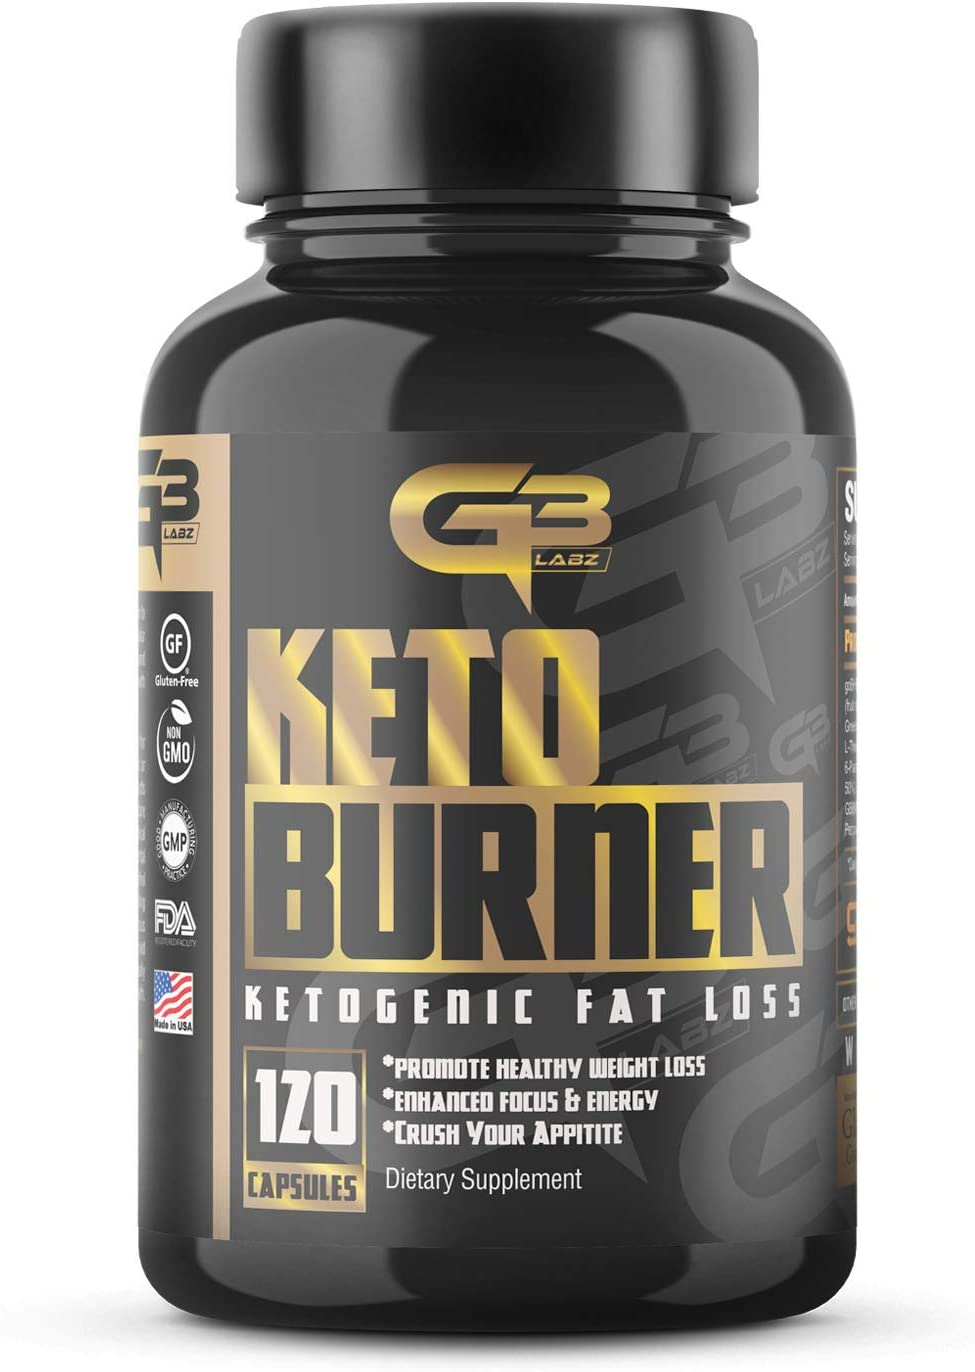 Keto Burner Pills, Exogenous Ketones W 2g Go Bhb Keto Supplement Garcinia Cambogia Blend for Men Women. Ketone Supplement for Focus, Energy, Ketosis 1